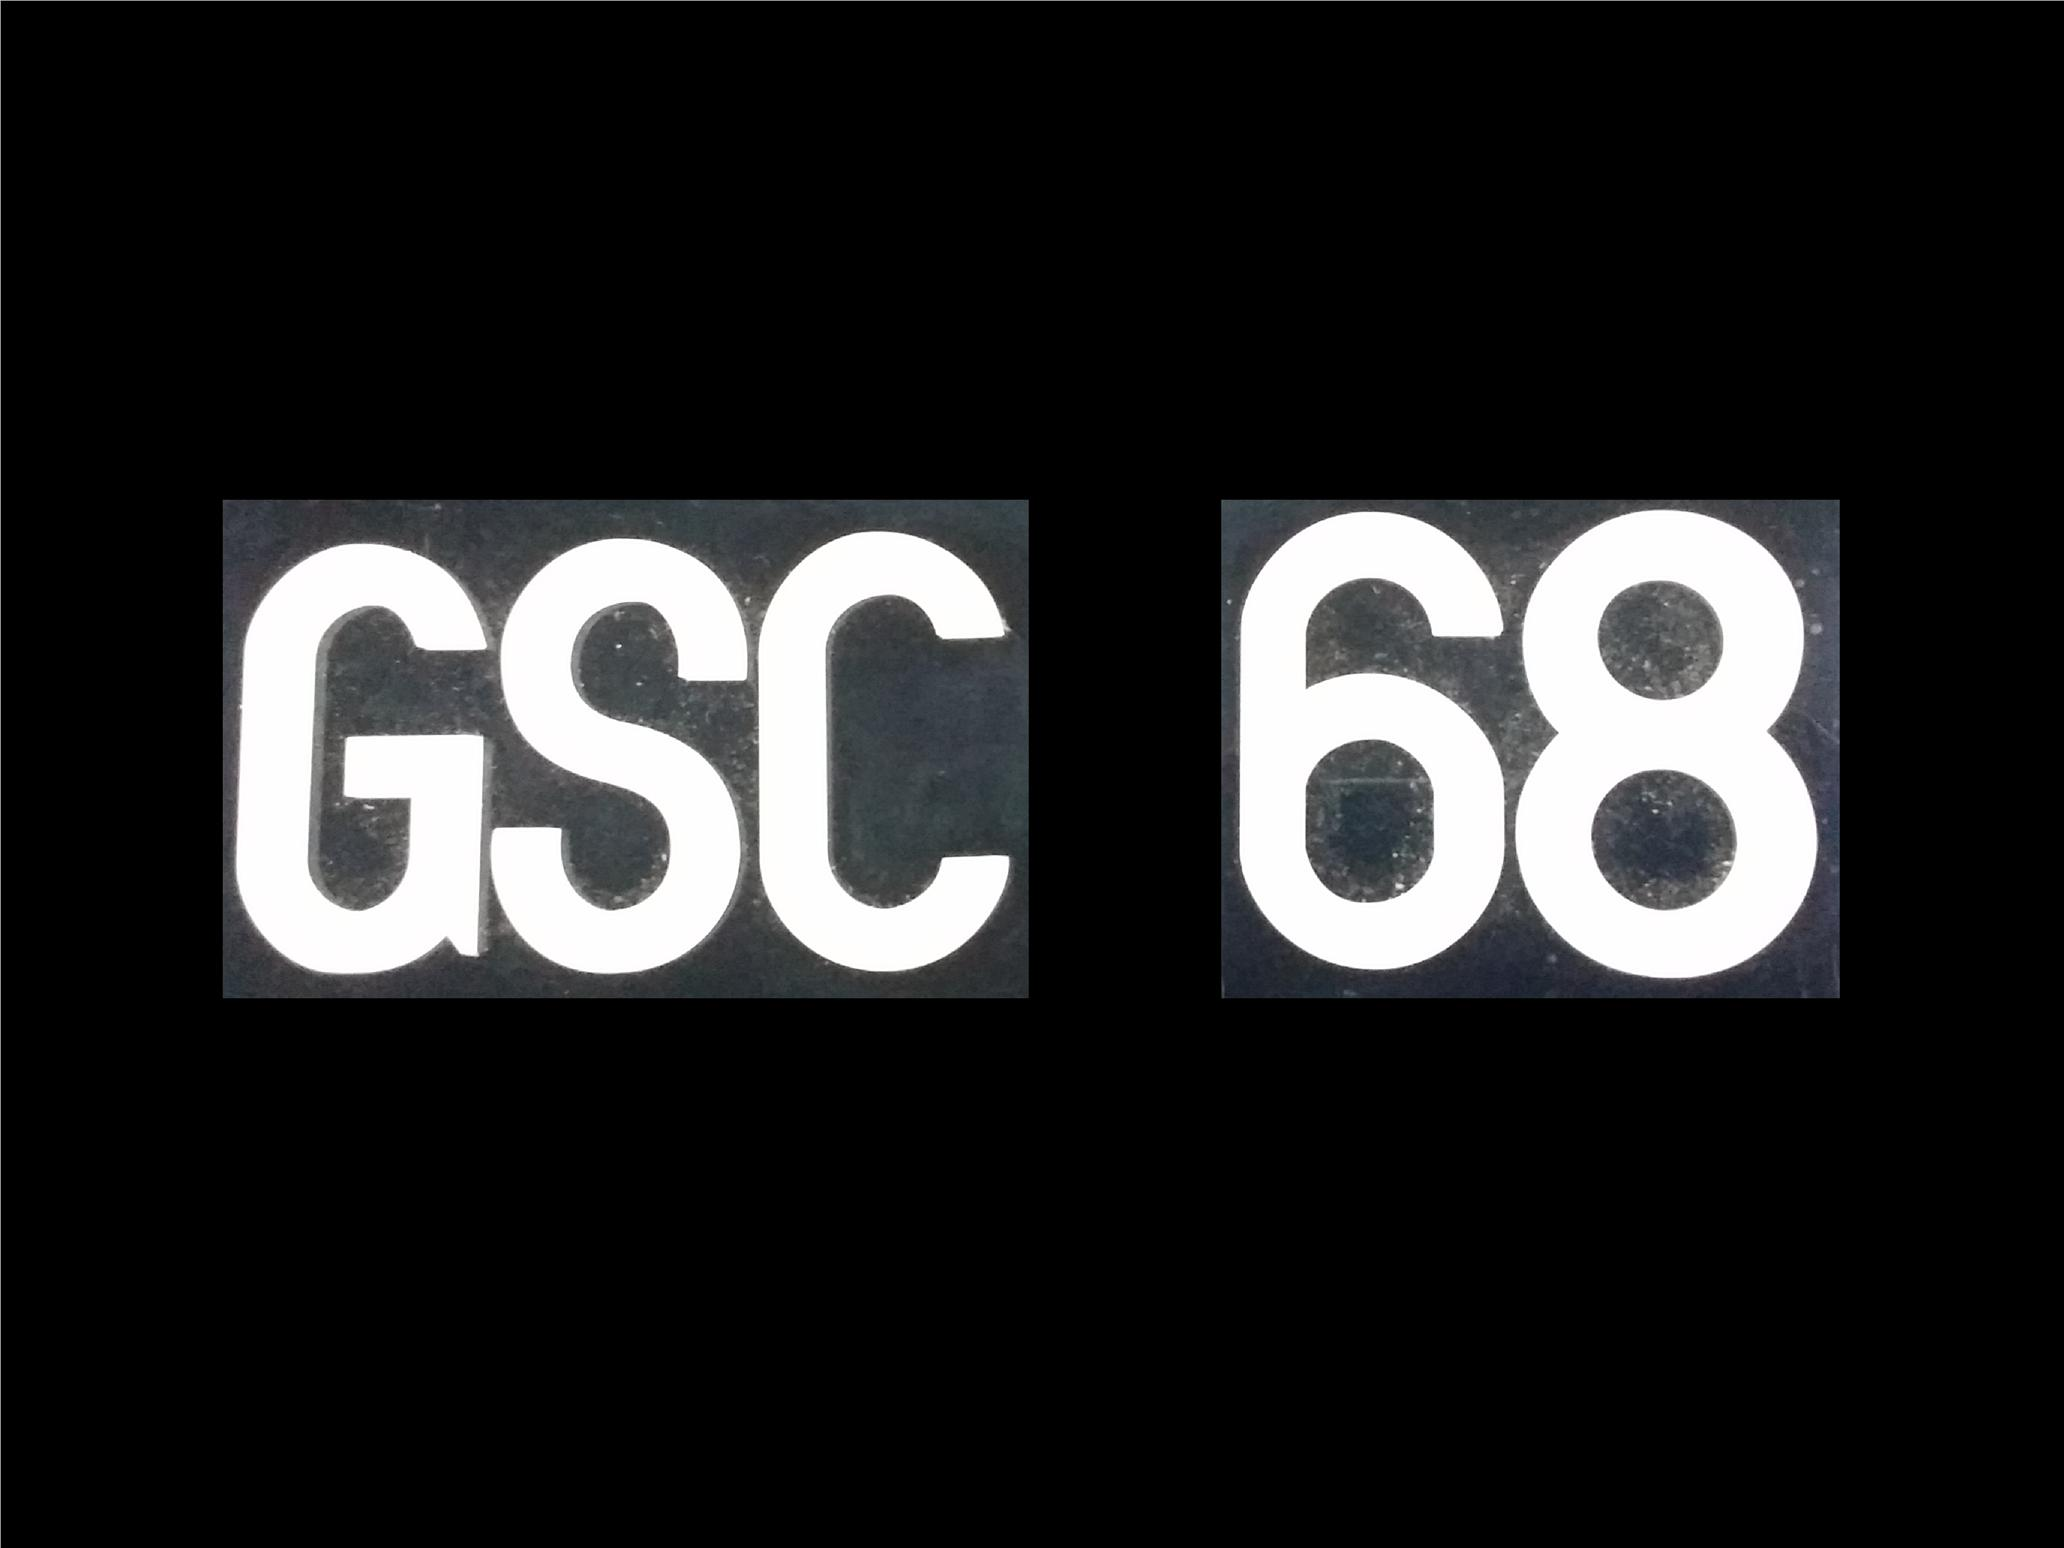 GSC FONT CRYSTAL ACRYLIC CAR NUMBER PLATE SET 2 - 7 ALPHABET